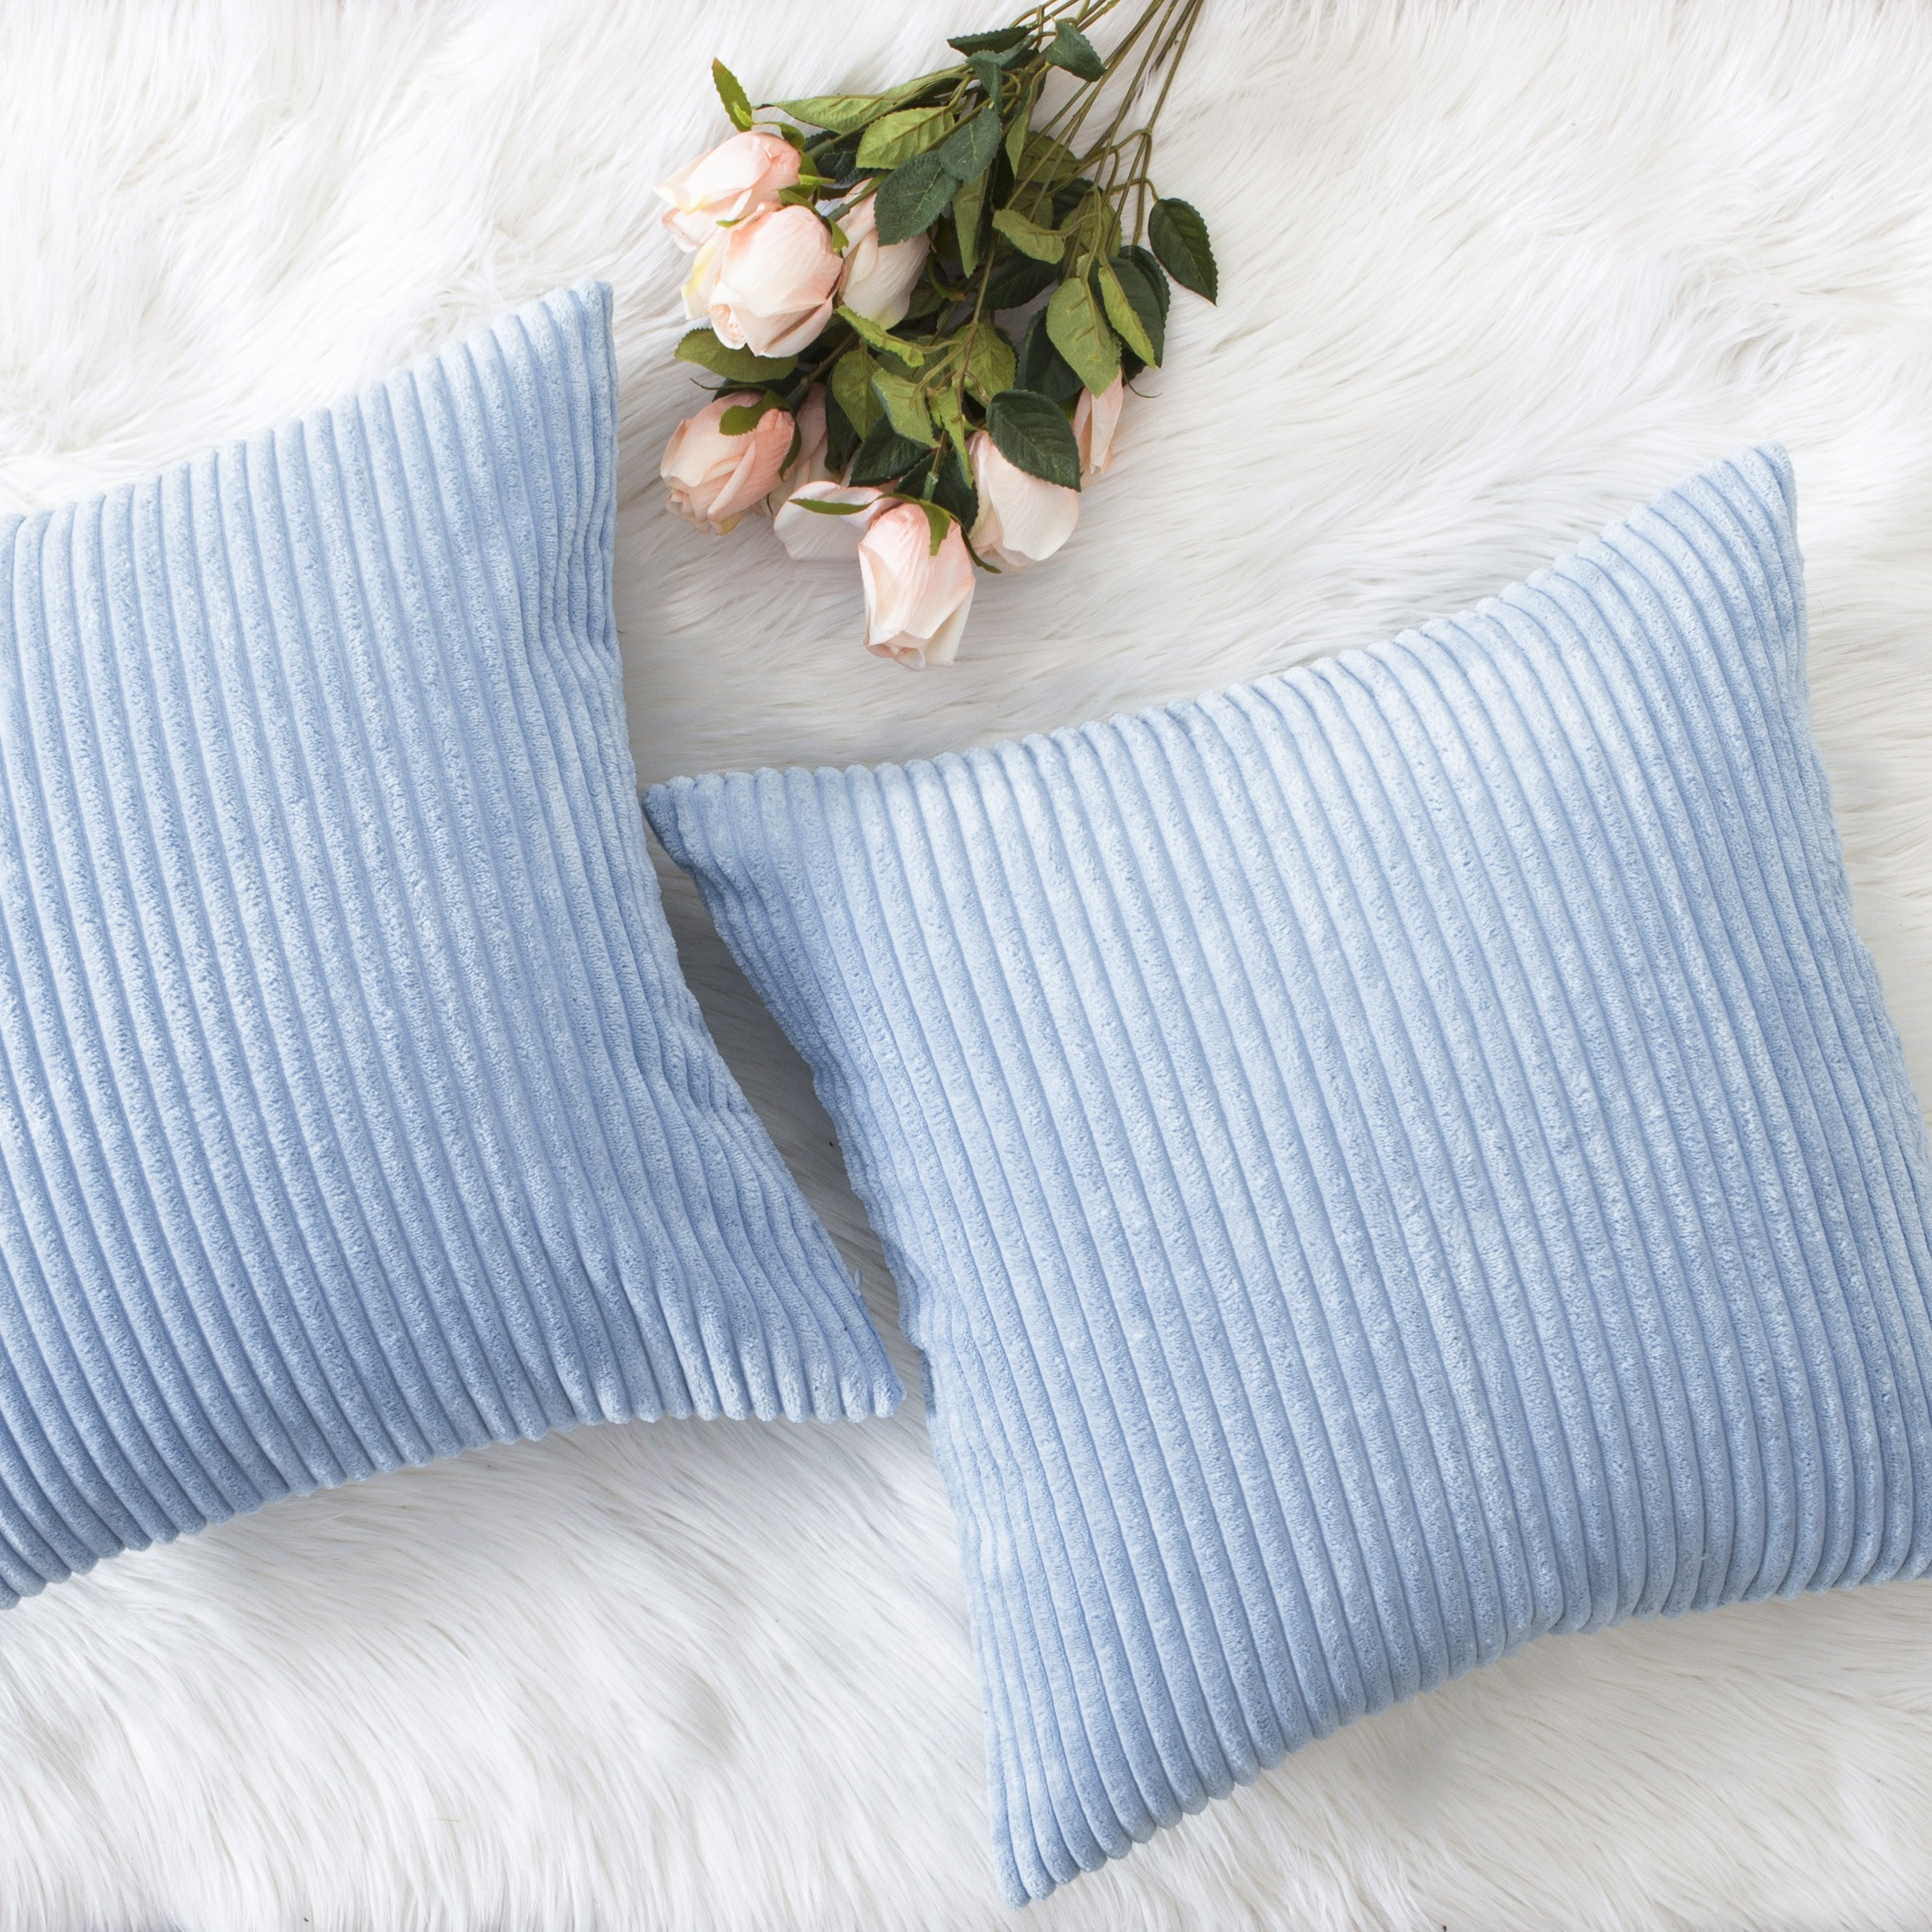 HOME BRILLIANT Decor Throw Pillow Cover Set Solid Supersoft Corduroy Handmade Decorative Velvet Cushion Cover with Zipper for Bed, 2 Pieces, Light Blue, 18''x18'' (45cm)